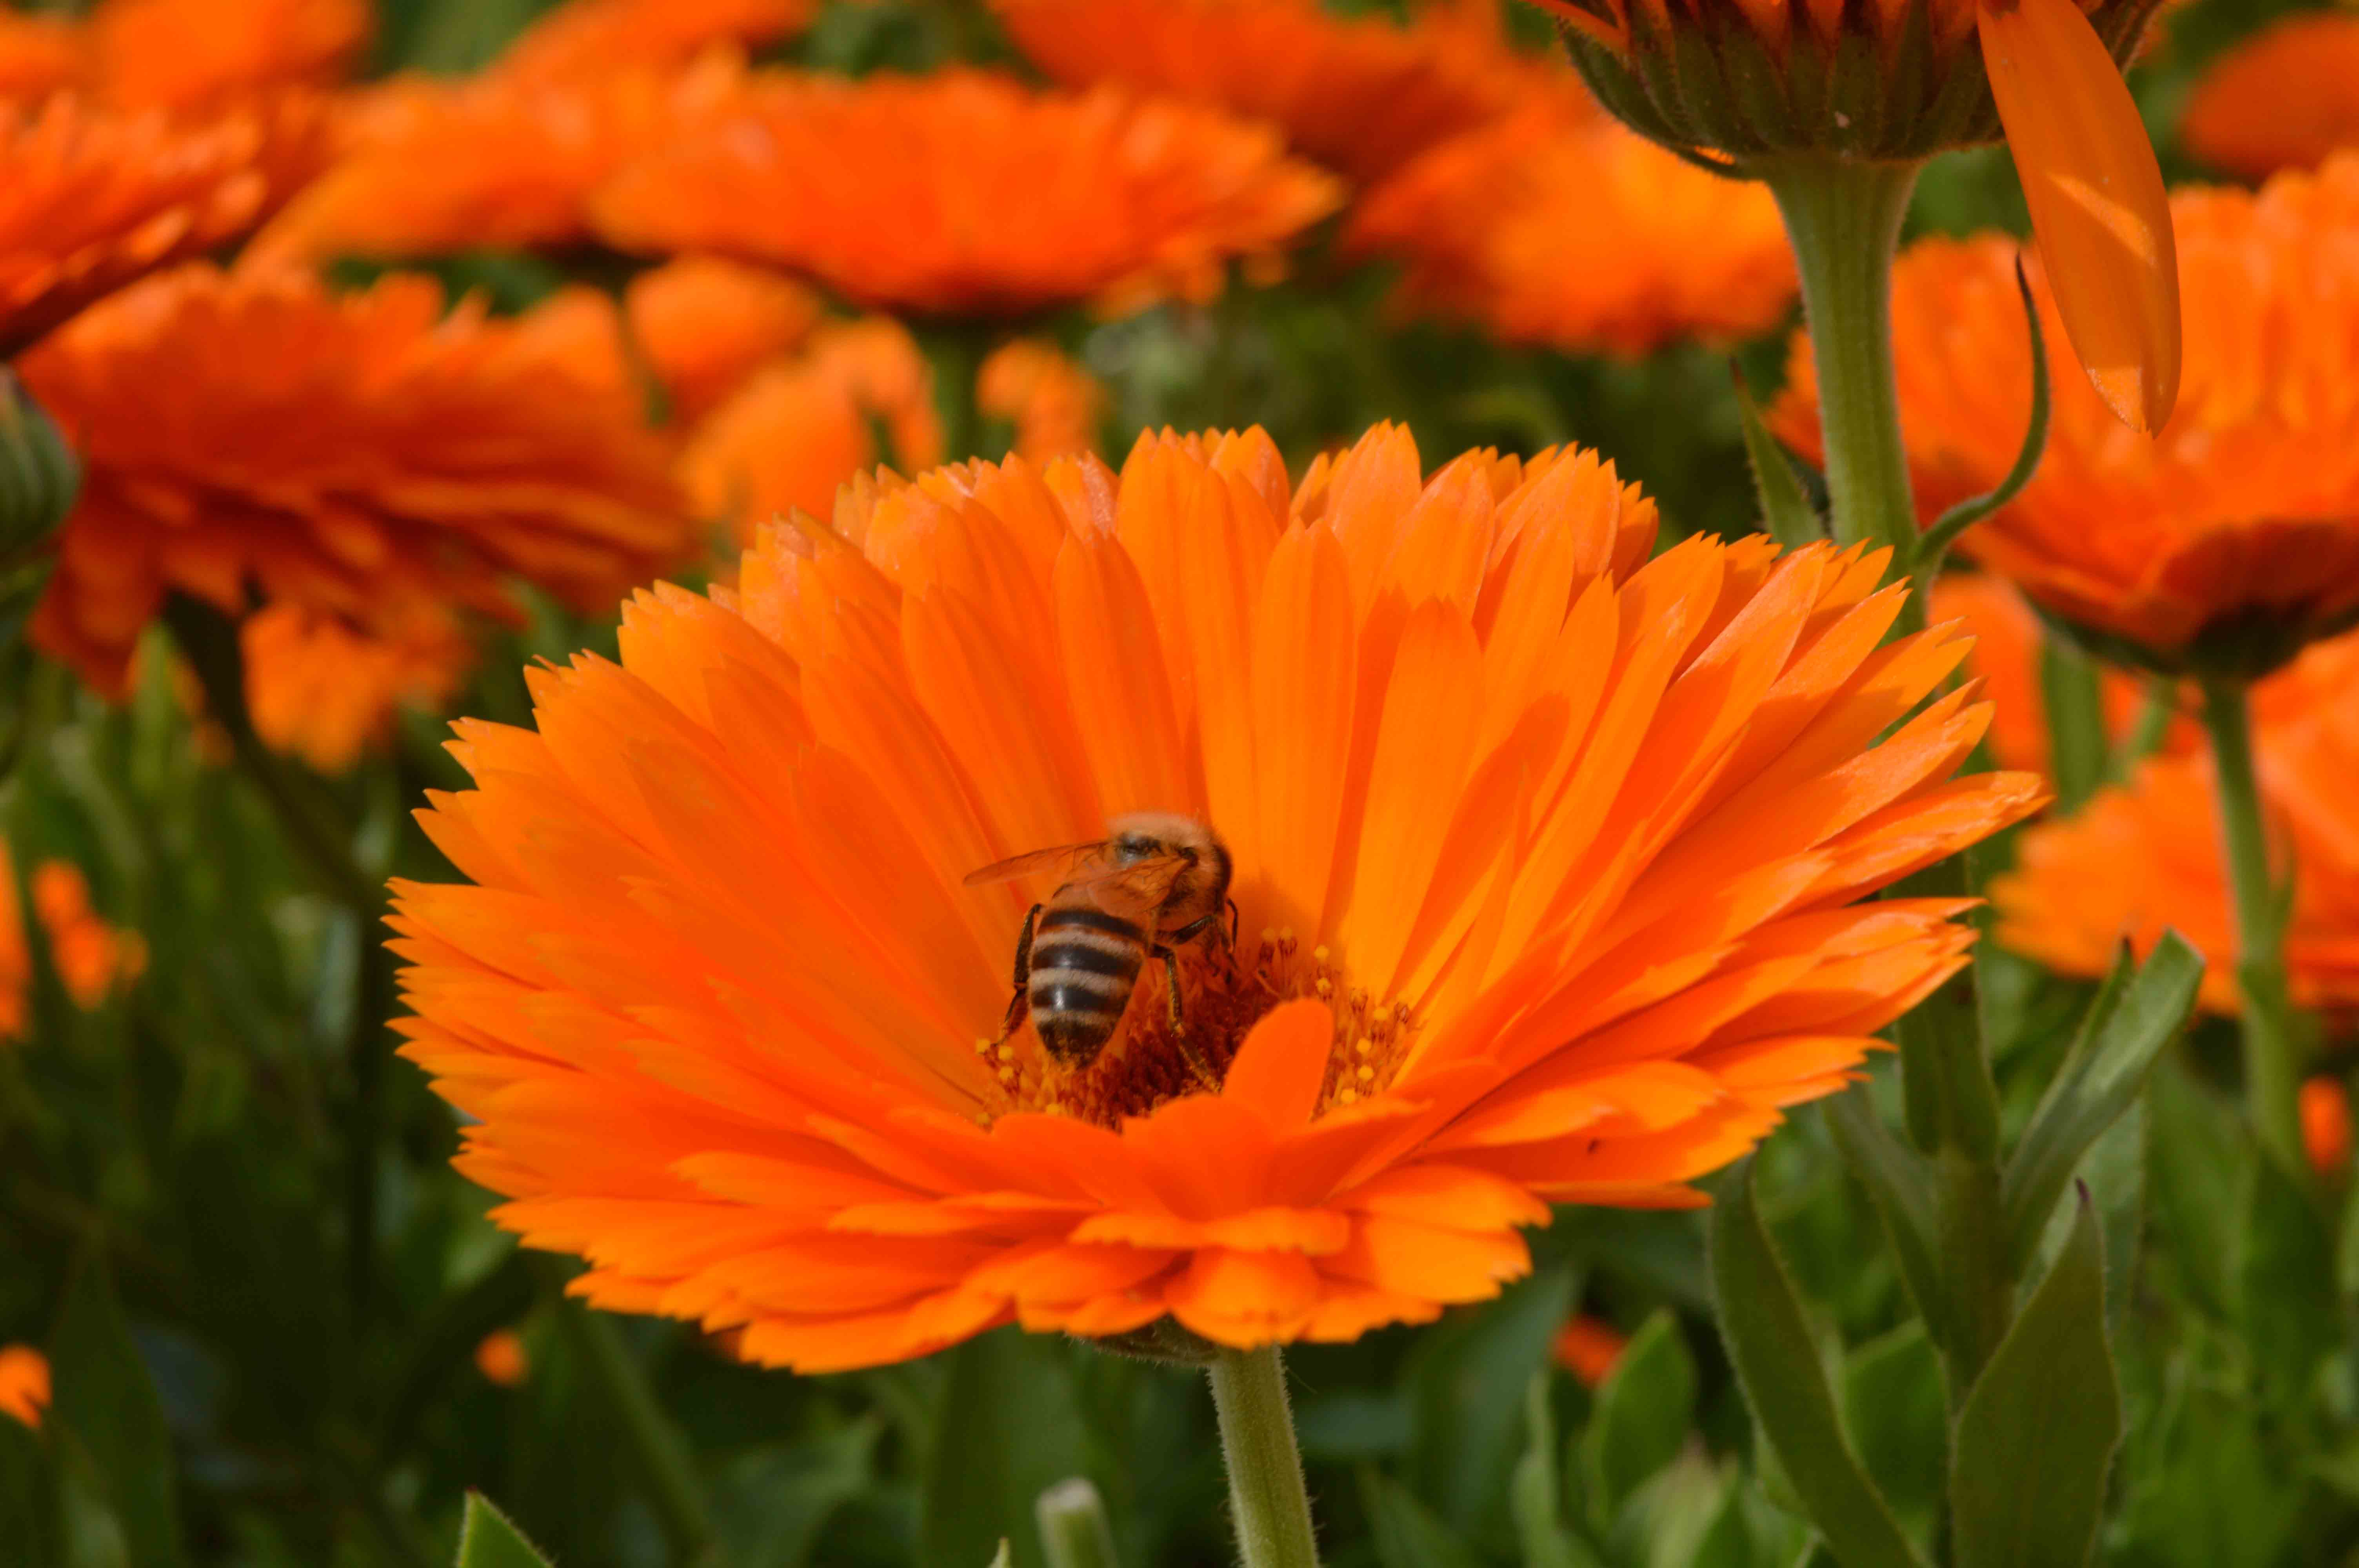 bumble_bee_in_the_flowers